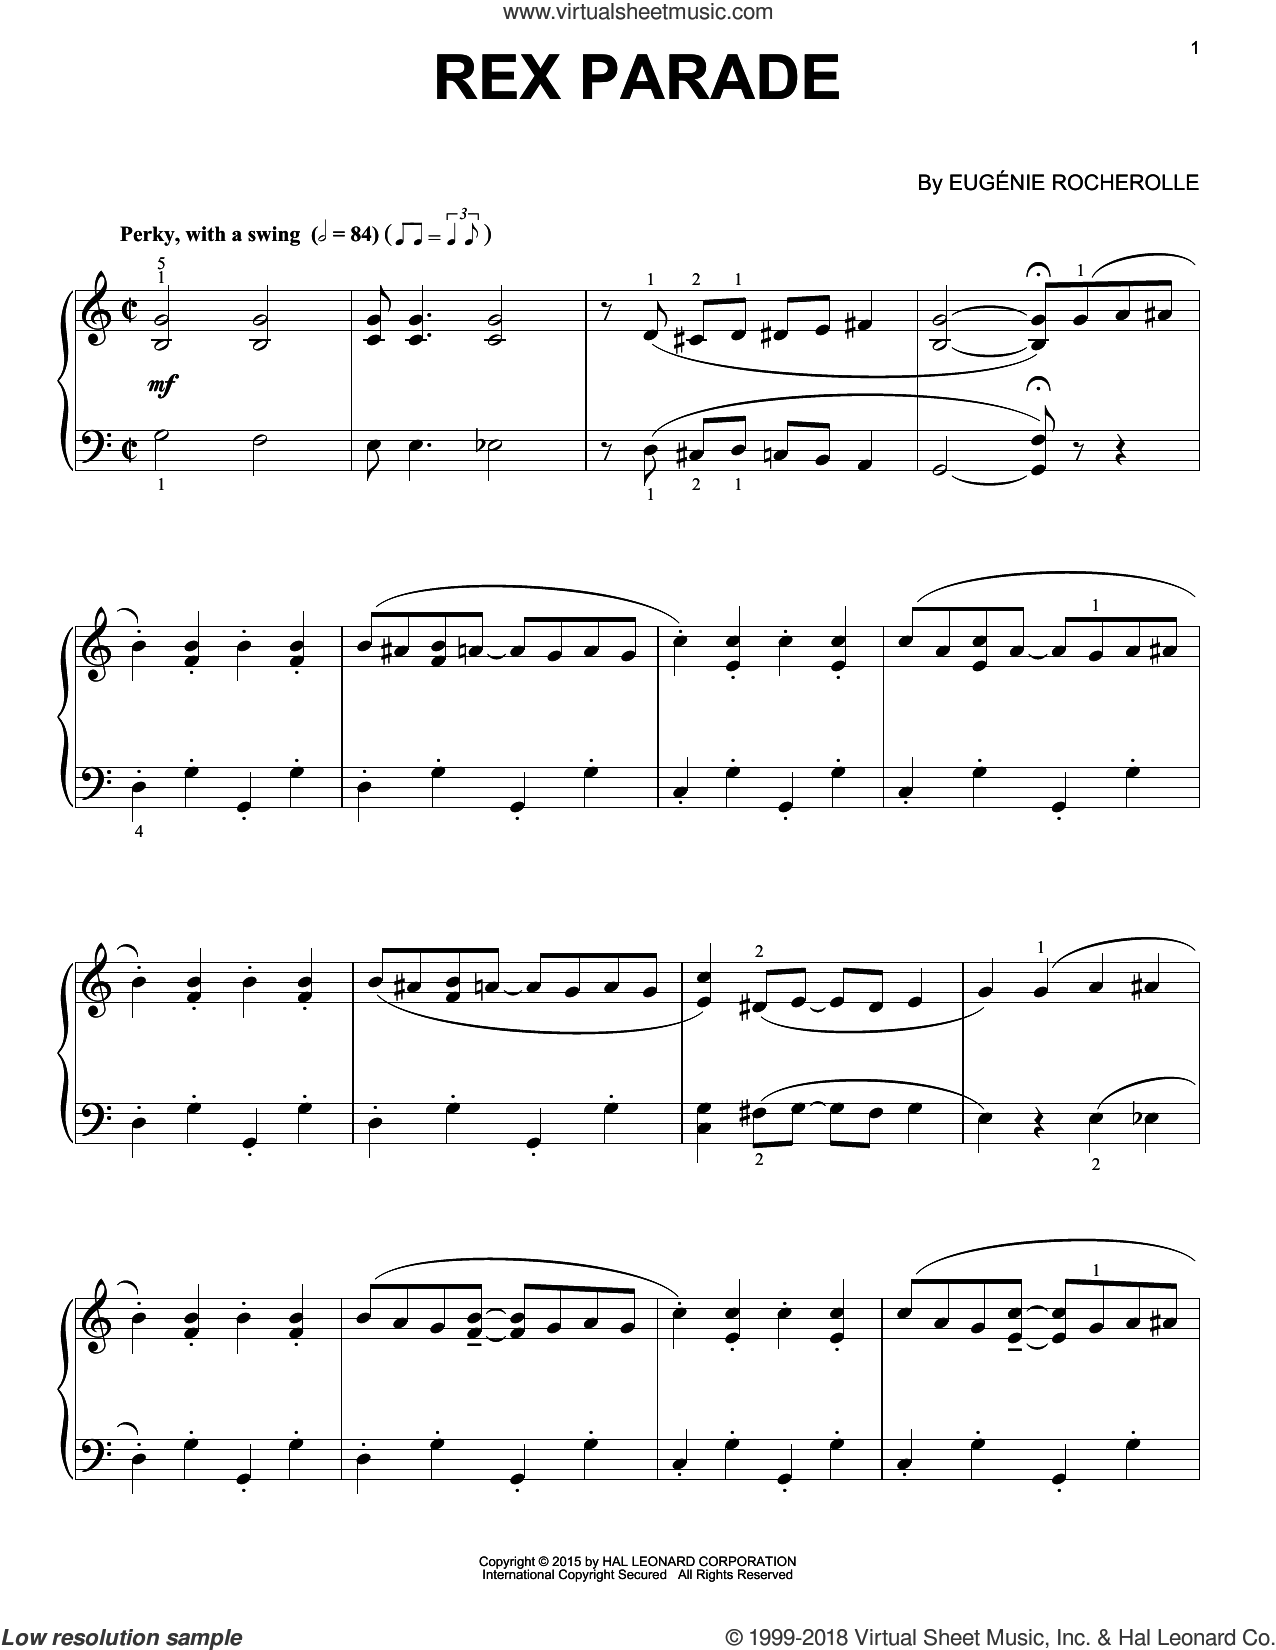 Rex Parade sheet music for piano solo by Eugenie Rocherolle, intermediate skill level